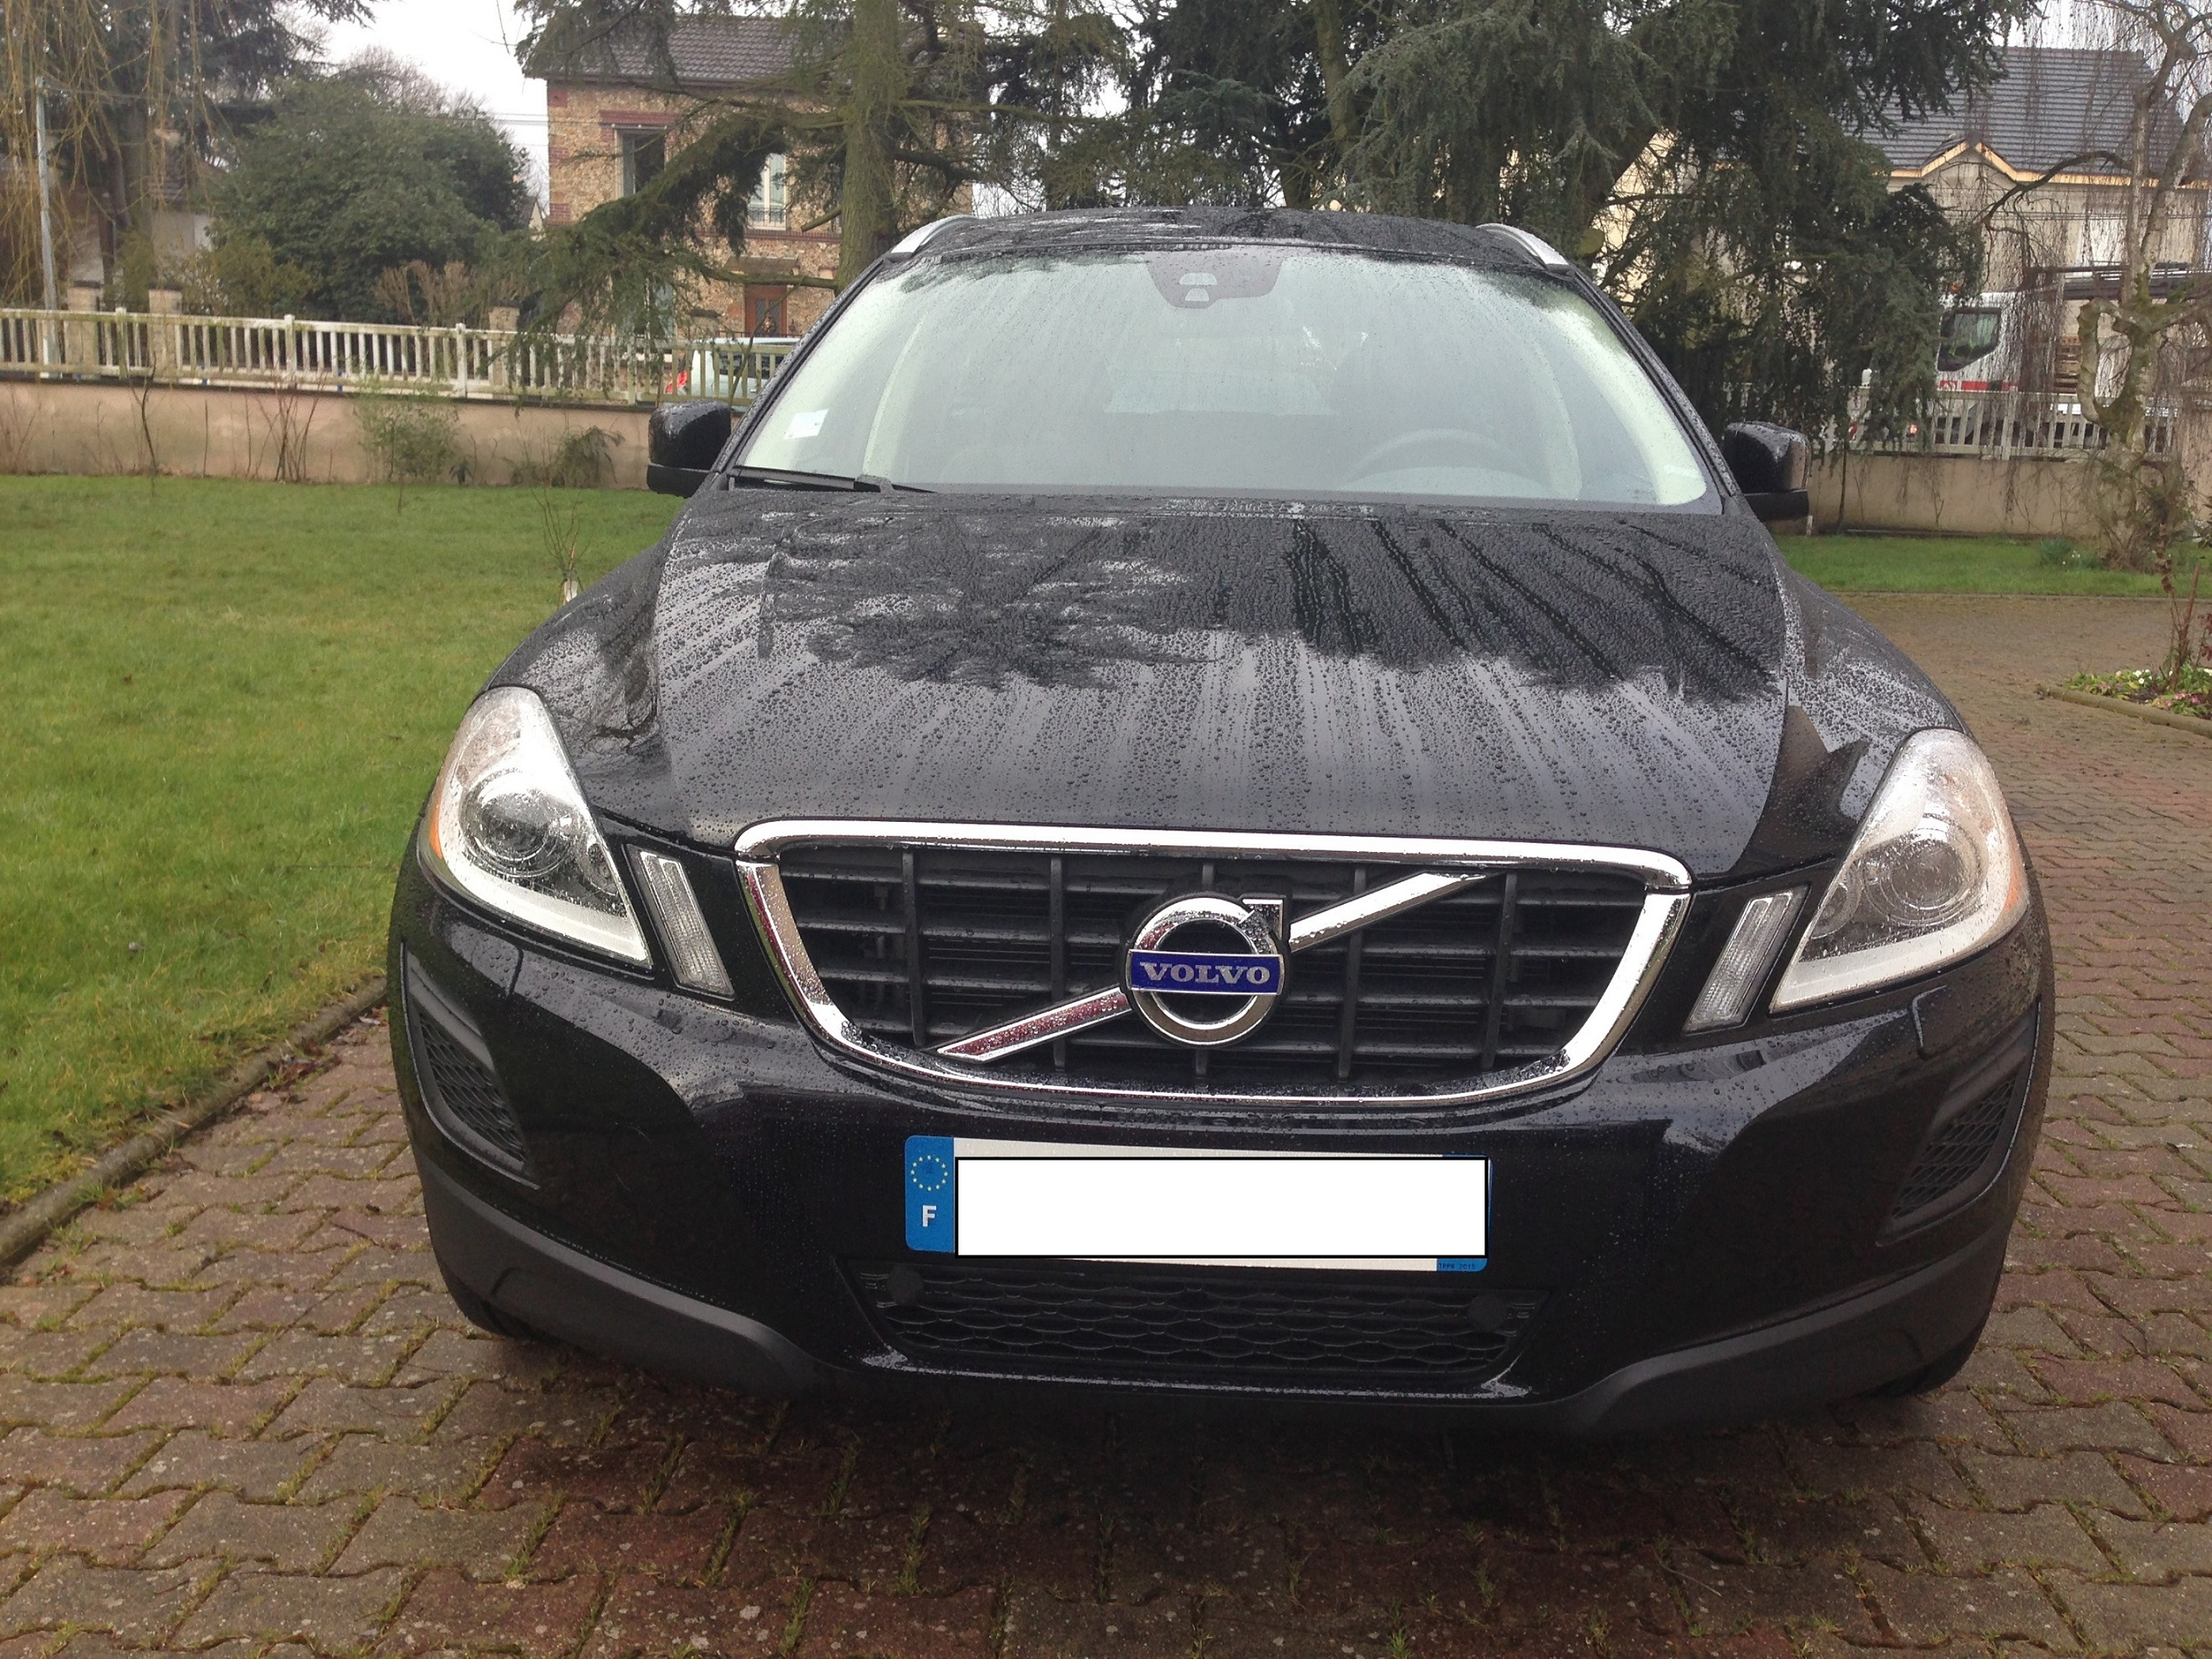 volvo xc60 d5 215 awd summum geartronic a vendre xc60 volvo forum marques. Black Bedroom Furniture Sets. Home Design Ideas